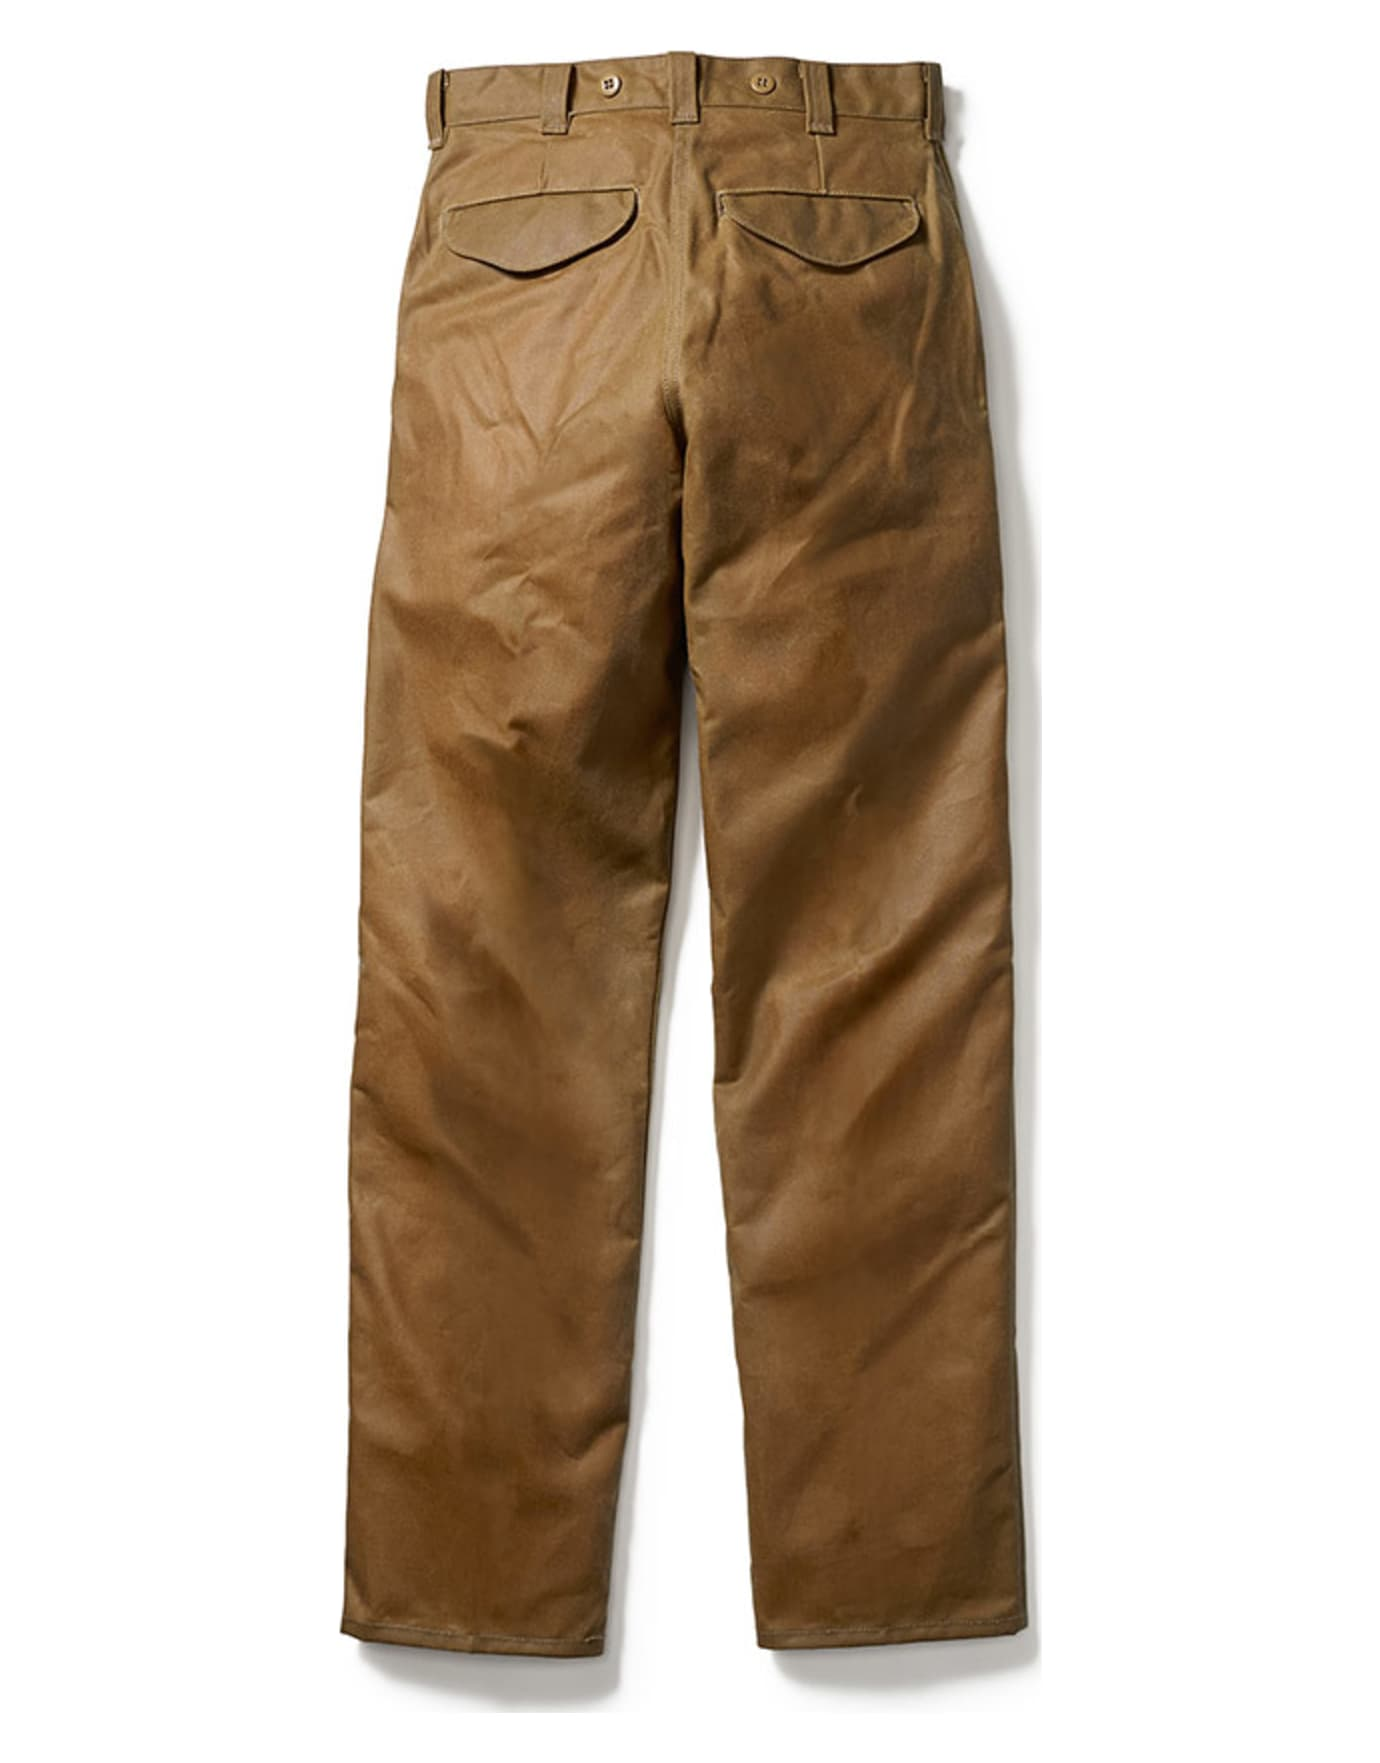 filson oil finish single tin pants Cc filson oil finish double tin pants will tackle any rugged task except that the single tins have a zipper fly that tends to break with.